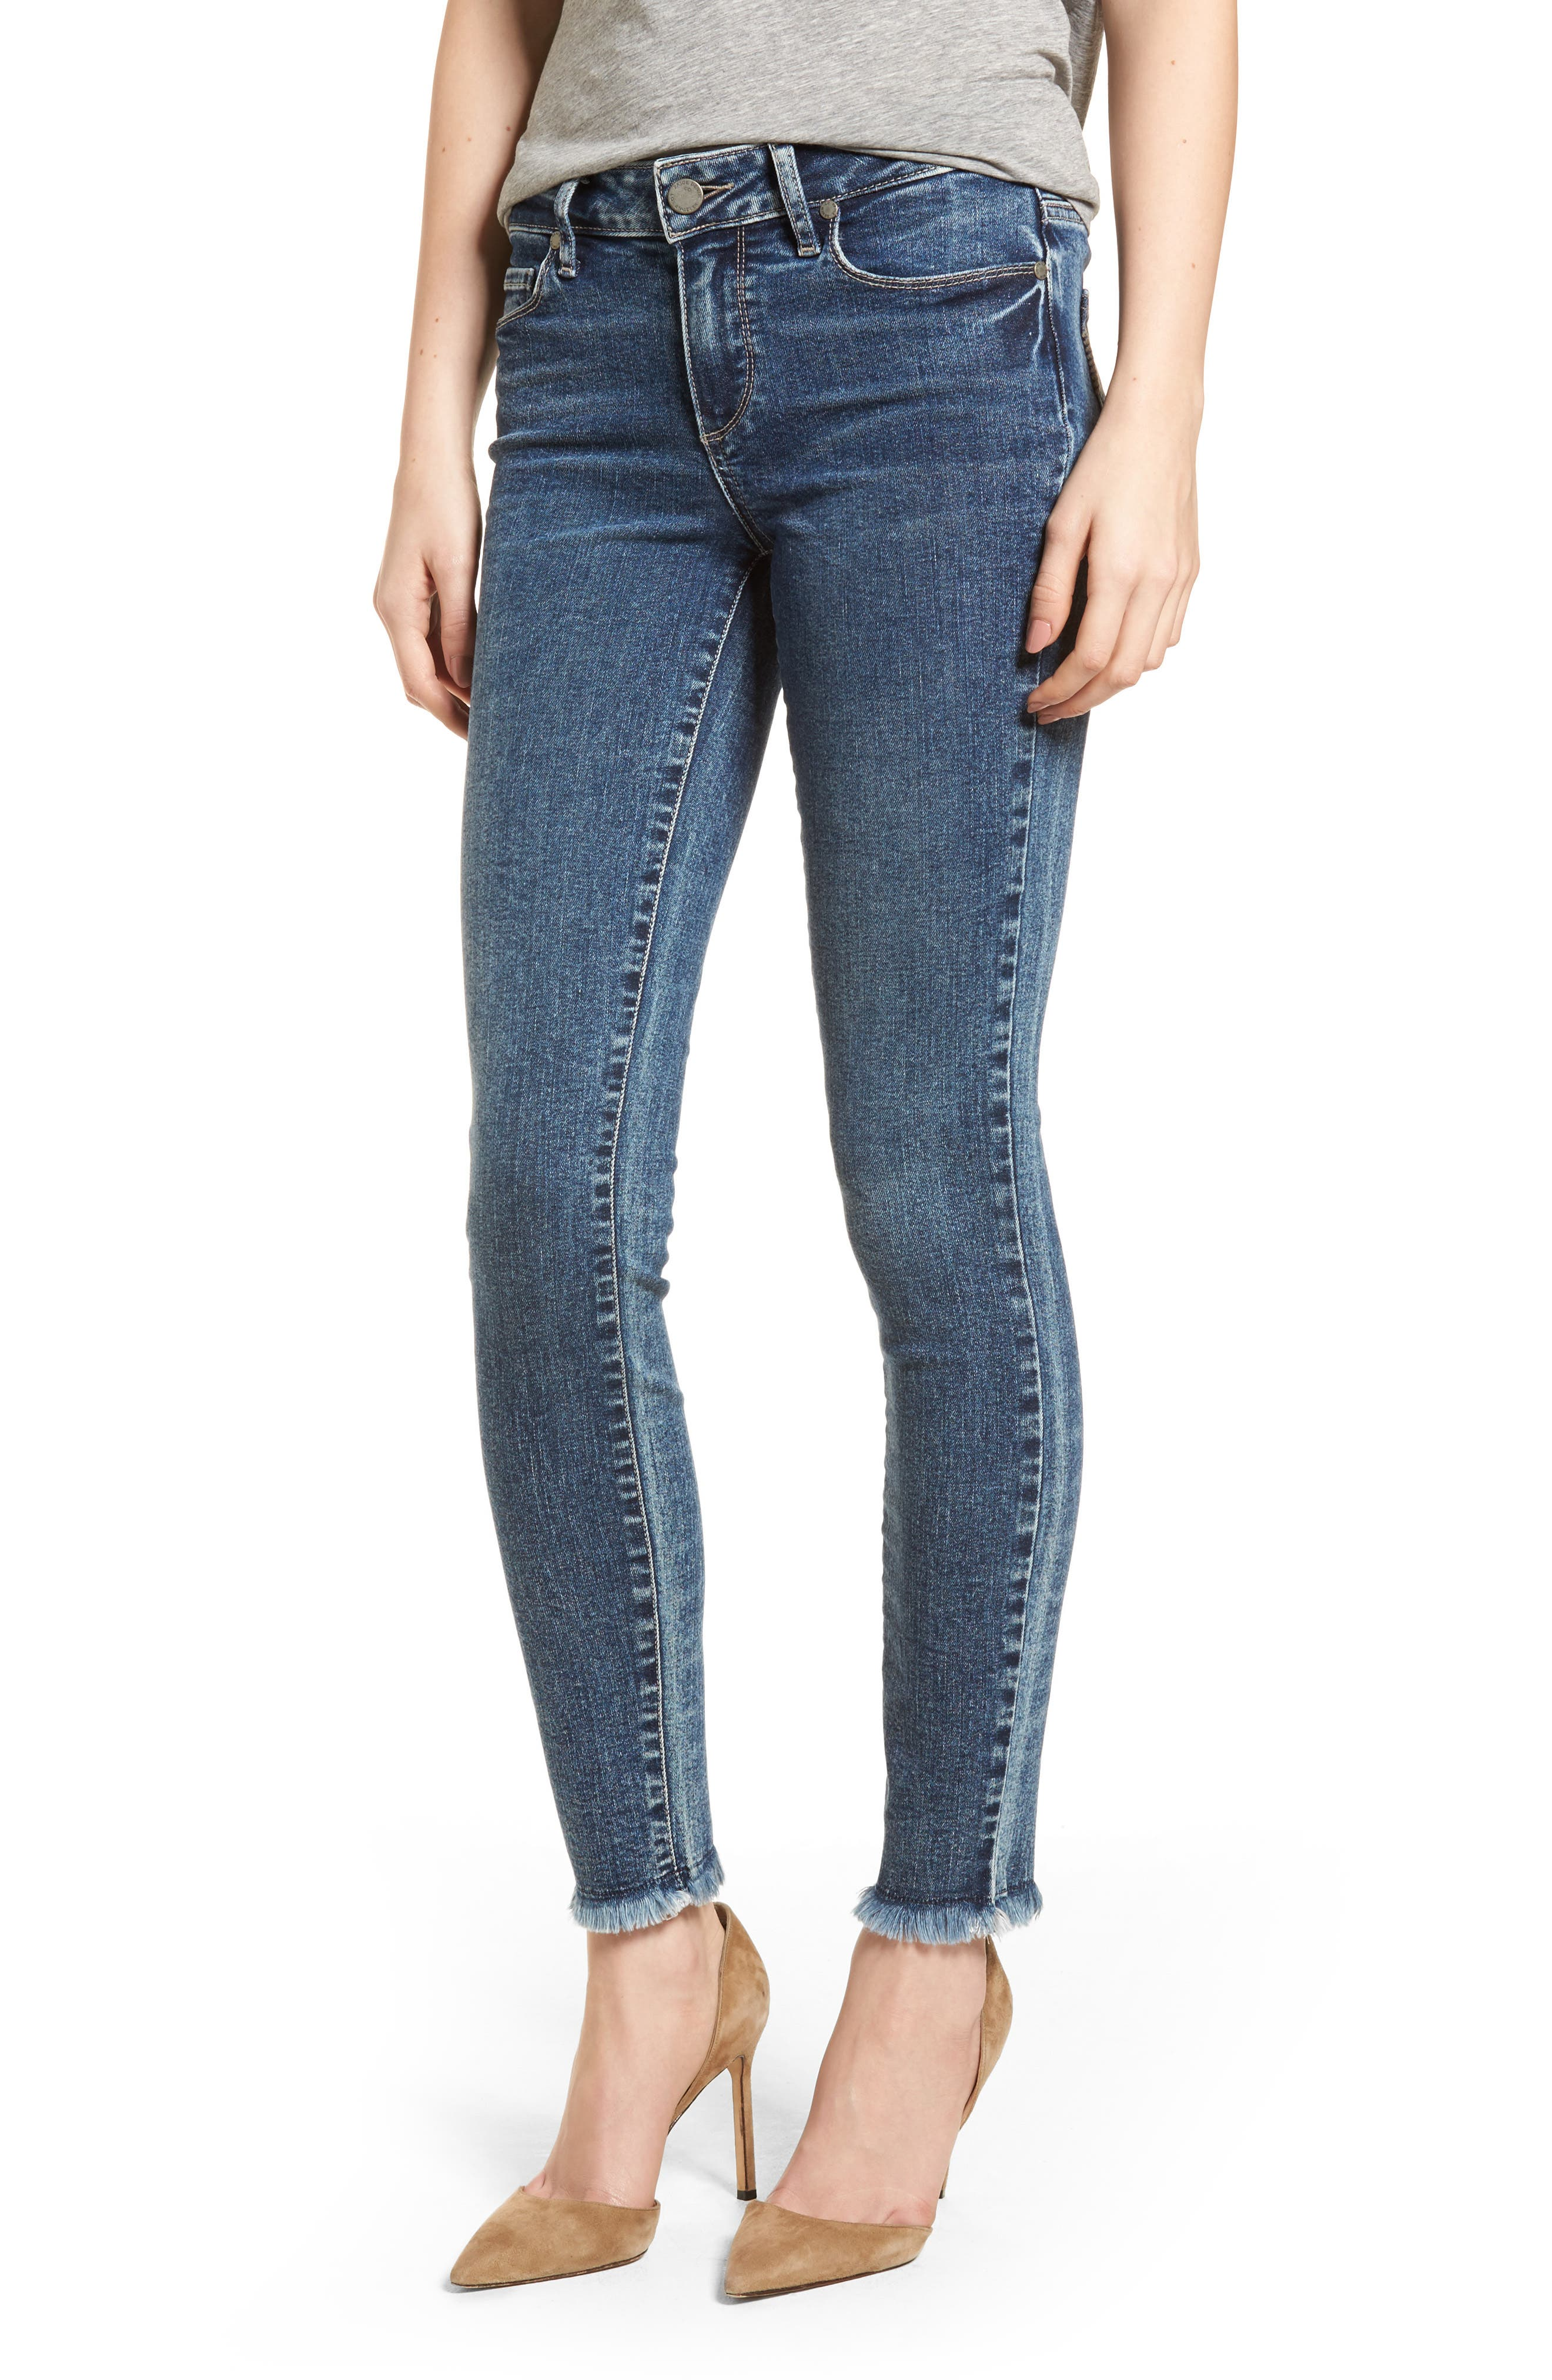 Transcend Vintage - Verdugo Ultra Skinny Jeans,                             Main thumbnail 1, color,                             Iness